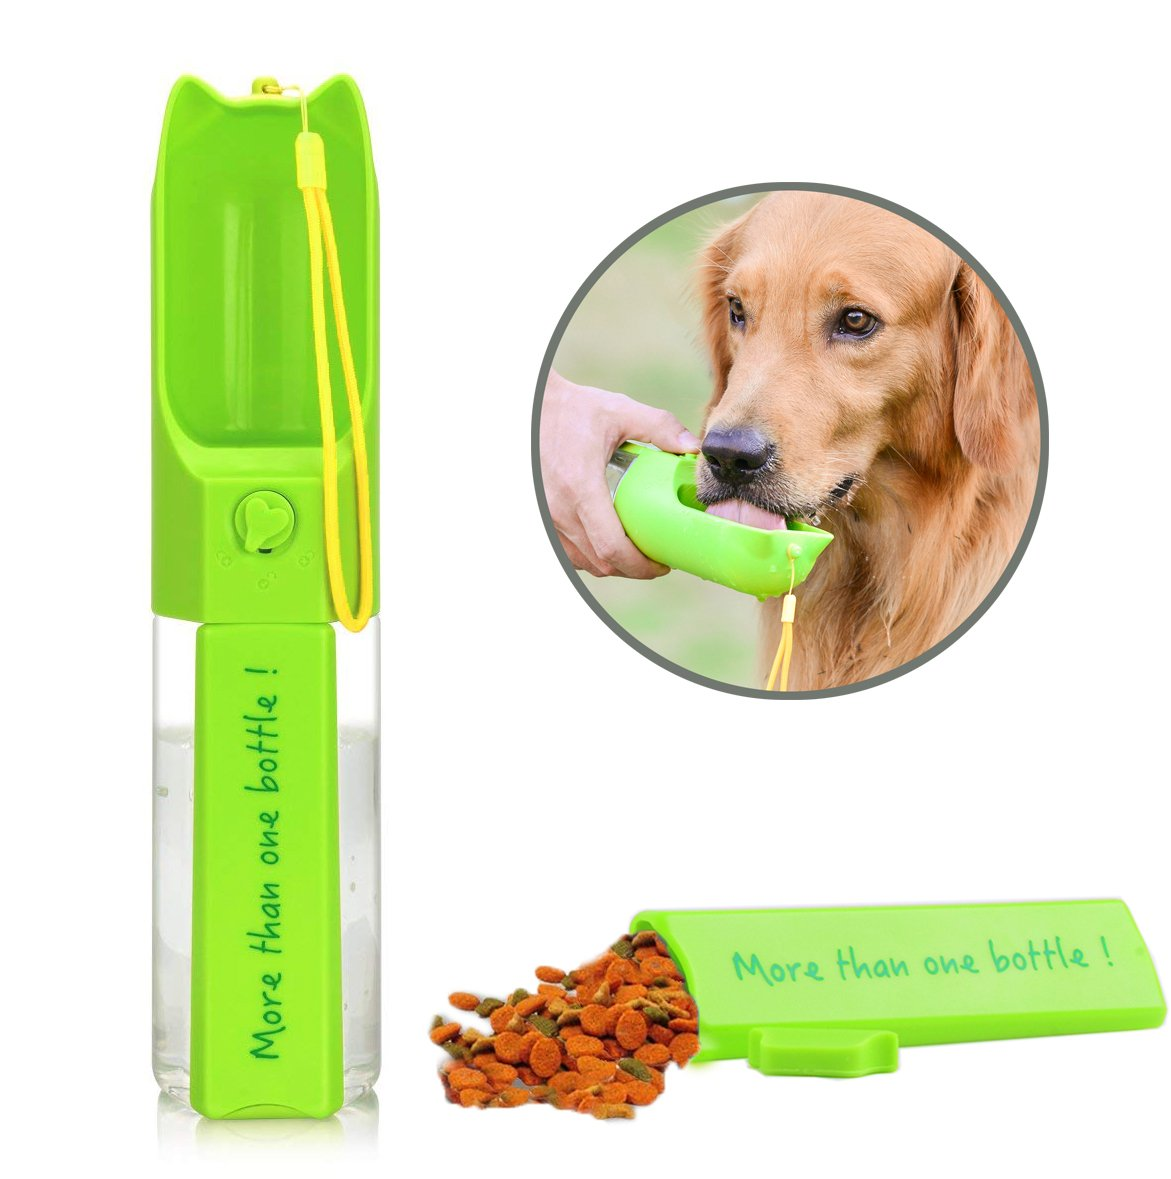 Petmii Dog Water Bottle, Leak Proof Portable Puppy Water Dispenser with Drinking Feeder for Pets Outdoor Walking, Hiking,Travel and on the Go, Antibacterial Food Grade Plastic BPA Free, (Green)